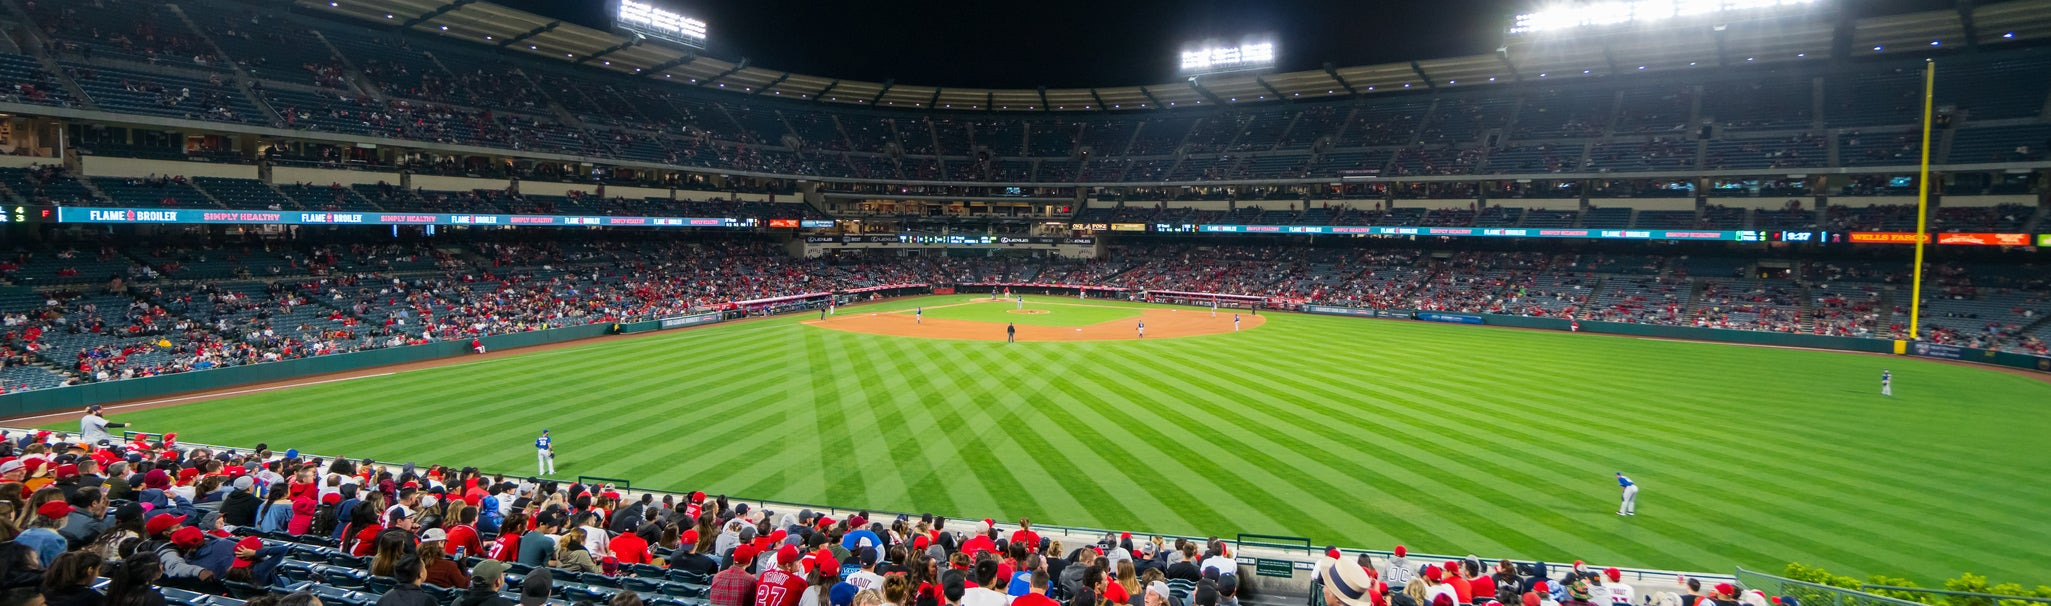 Seat view from Right Field MVP